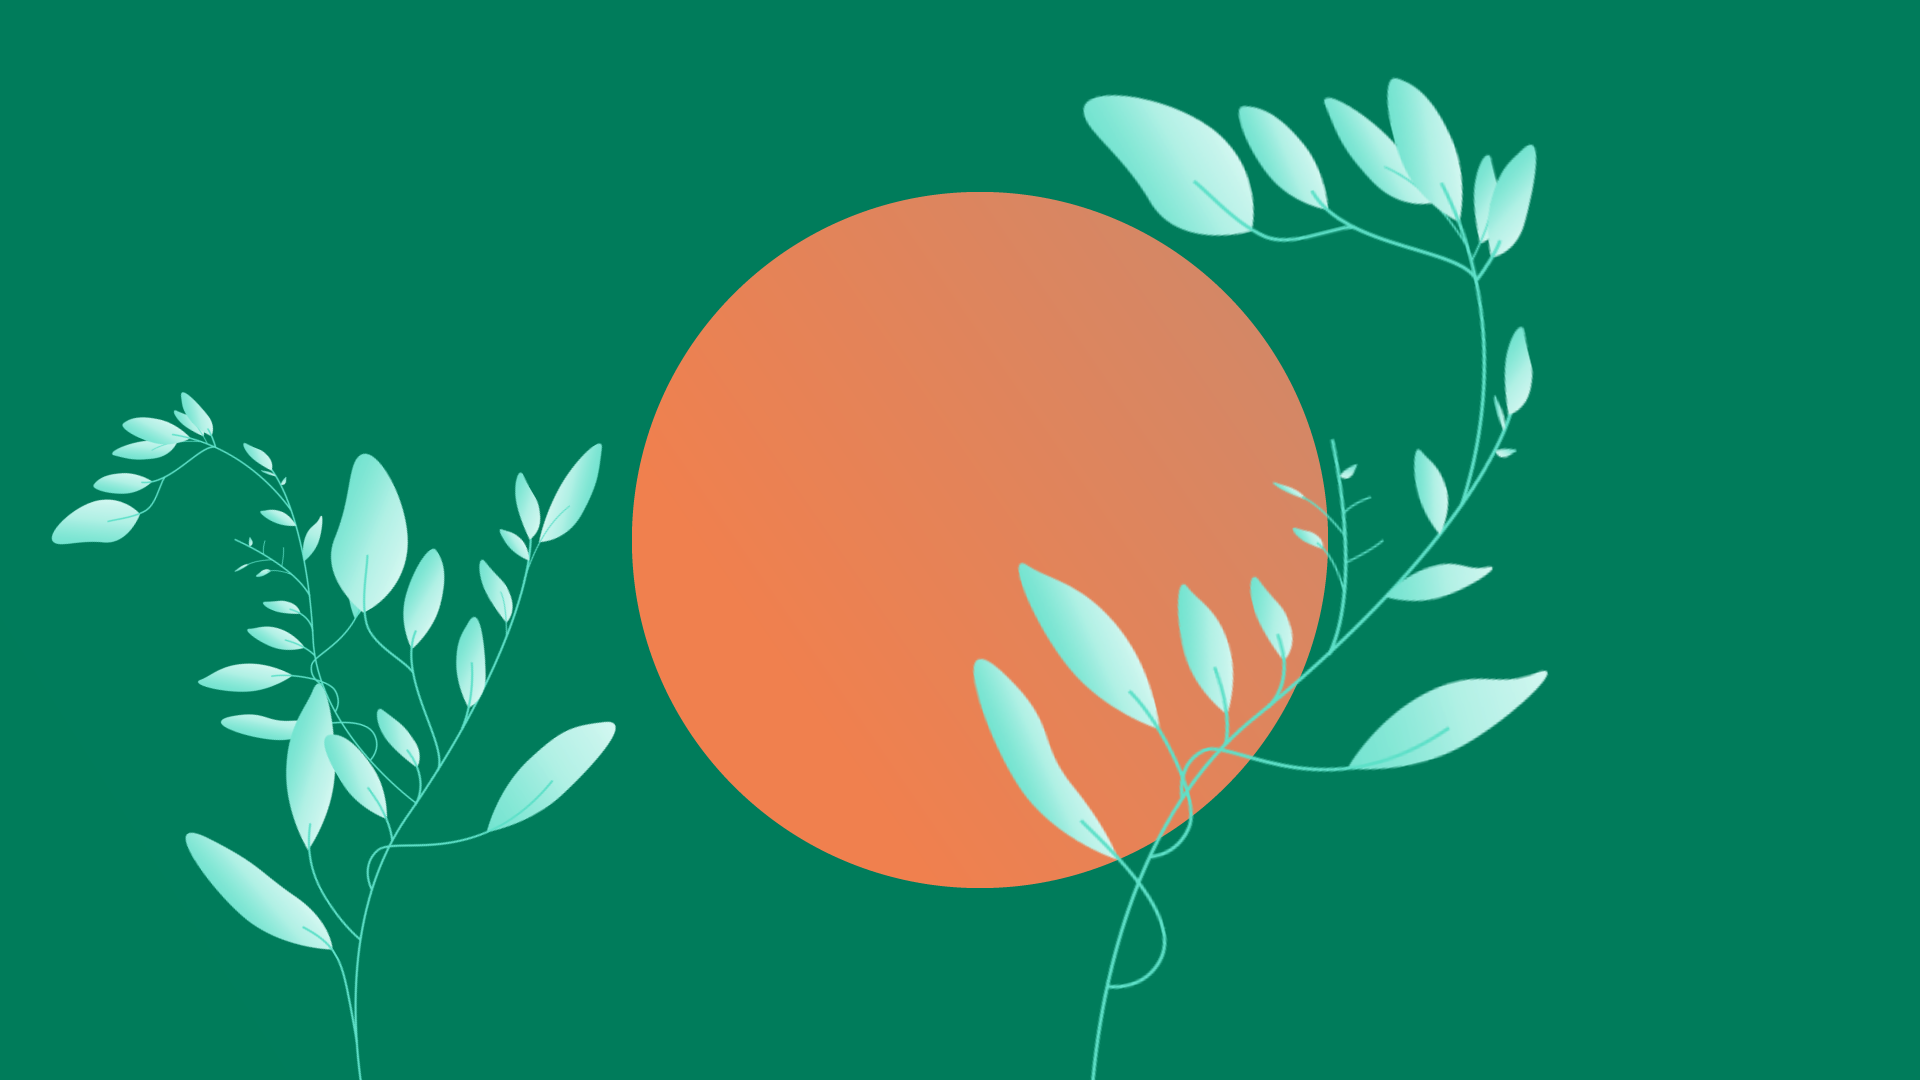 Project management, inner circle of growth hacking, orange circle on green background with sprouting green leafy plants.